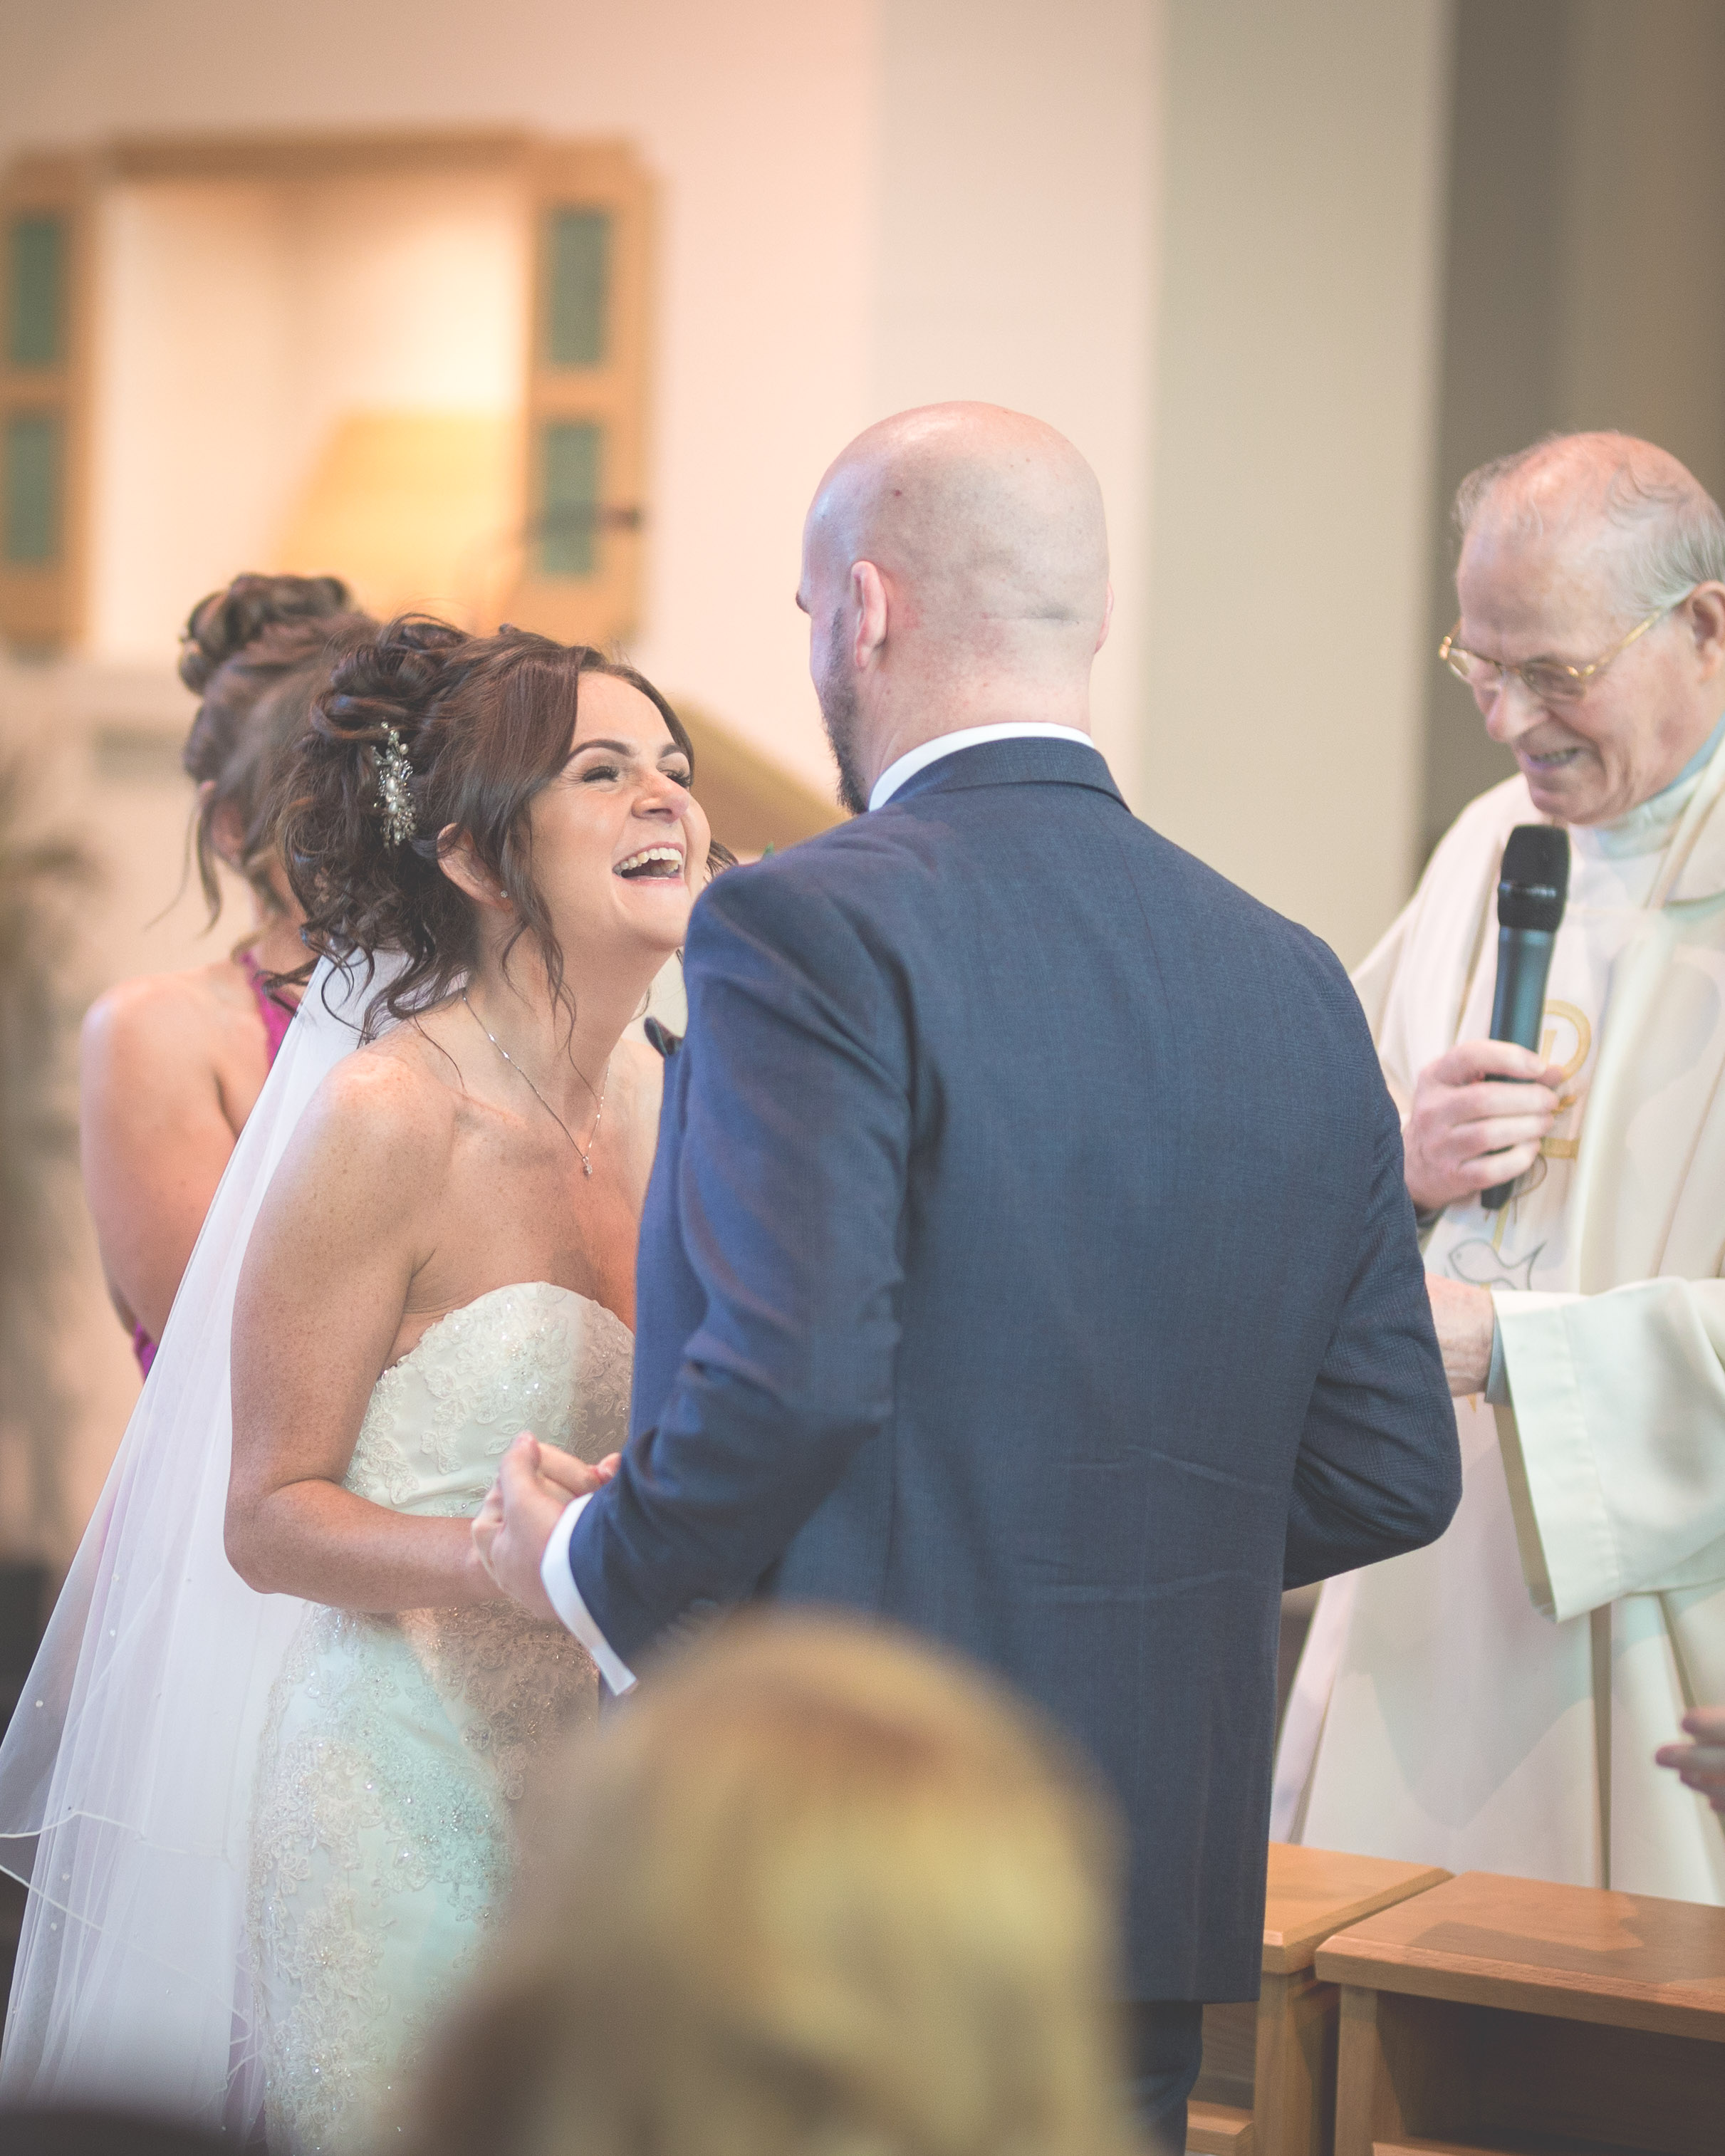 Aisling & Andy - Ceremony-72.jpg